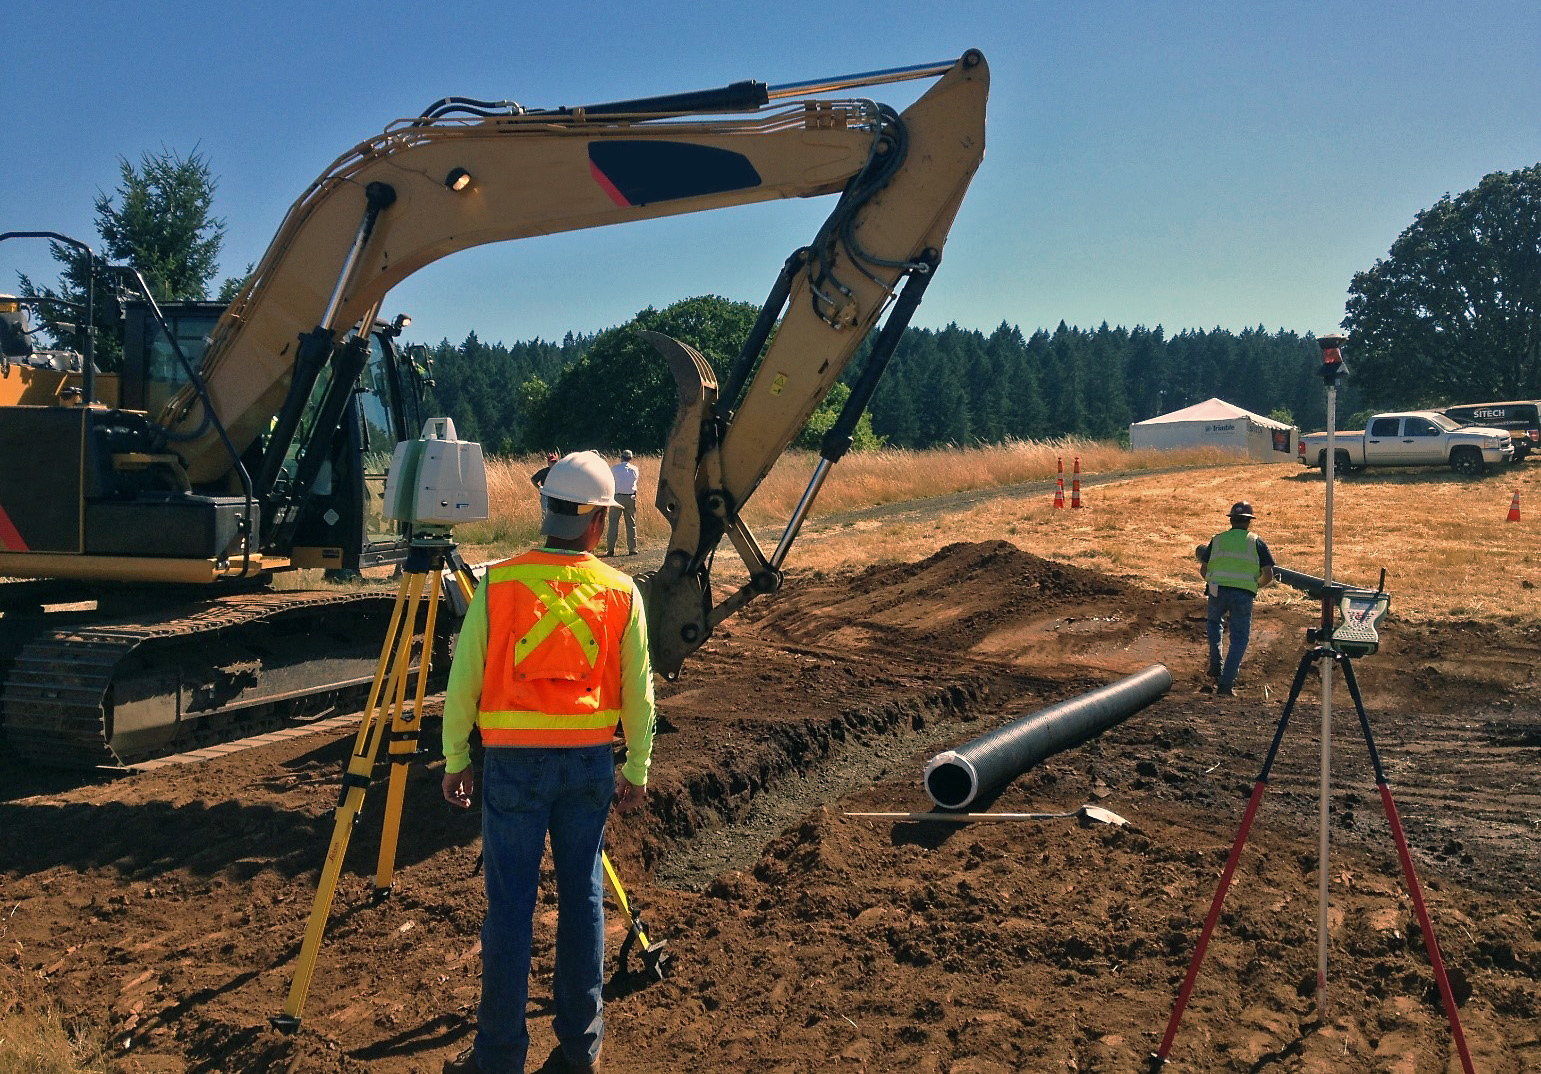 Worker in orange safety vest and hardhat stands near survey equipment and an excavator during pipe installation.